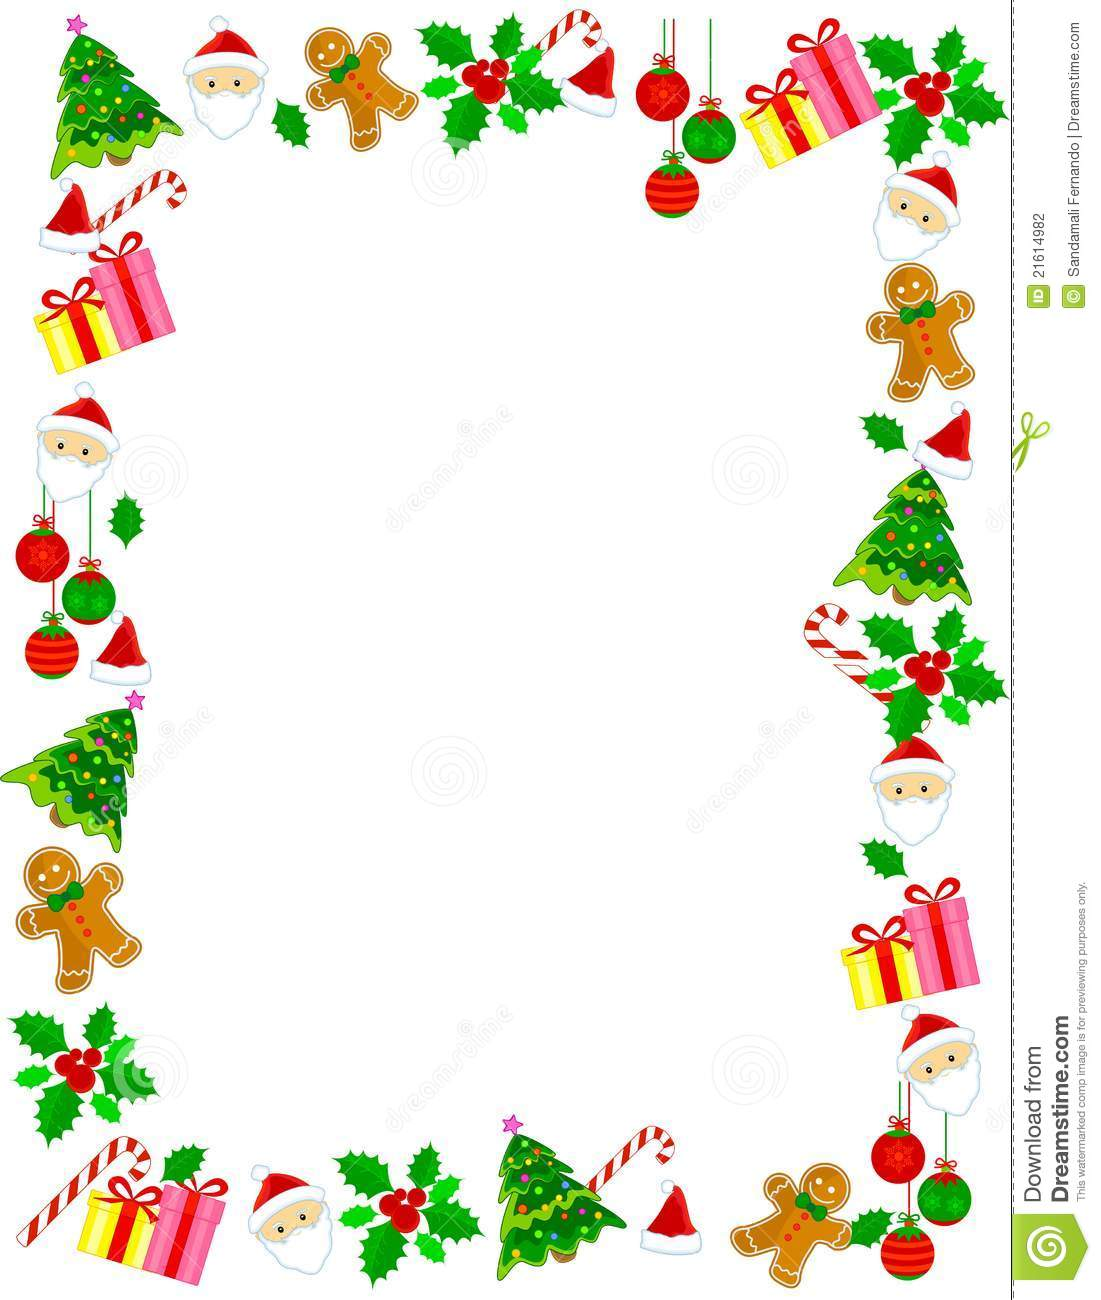 Christmas border frame illustration megapixl jpg